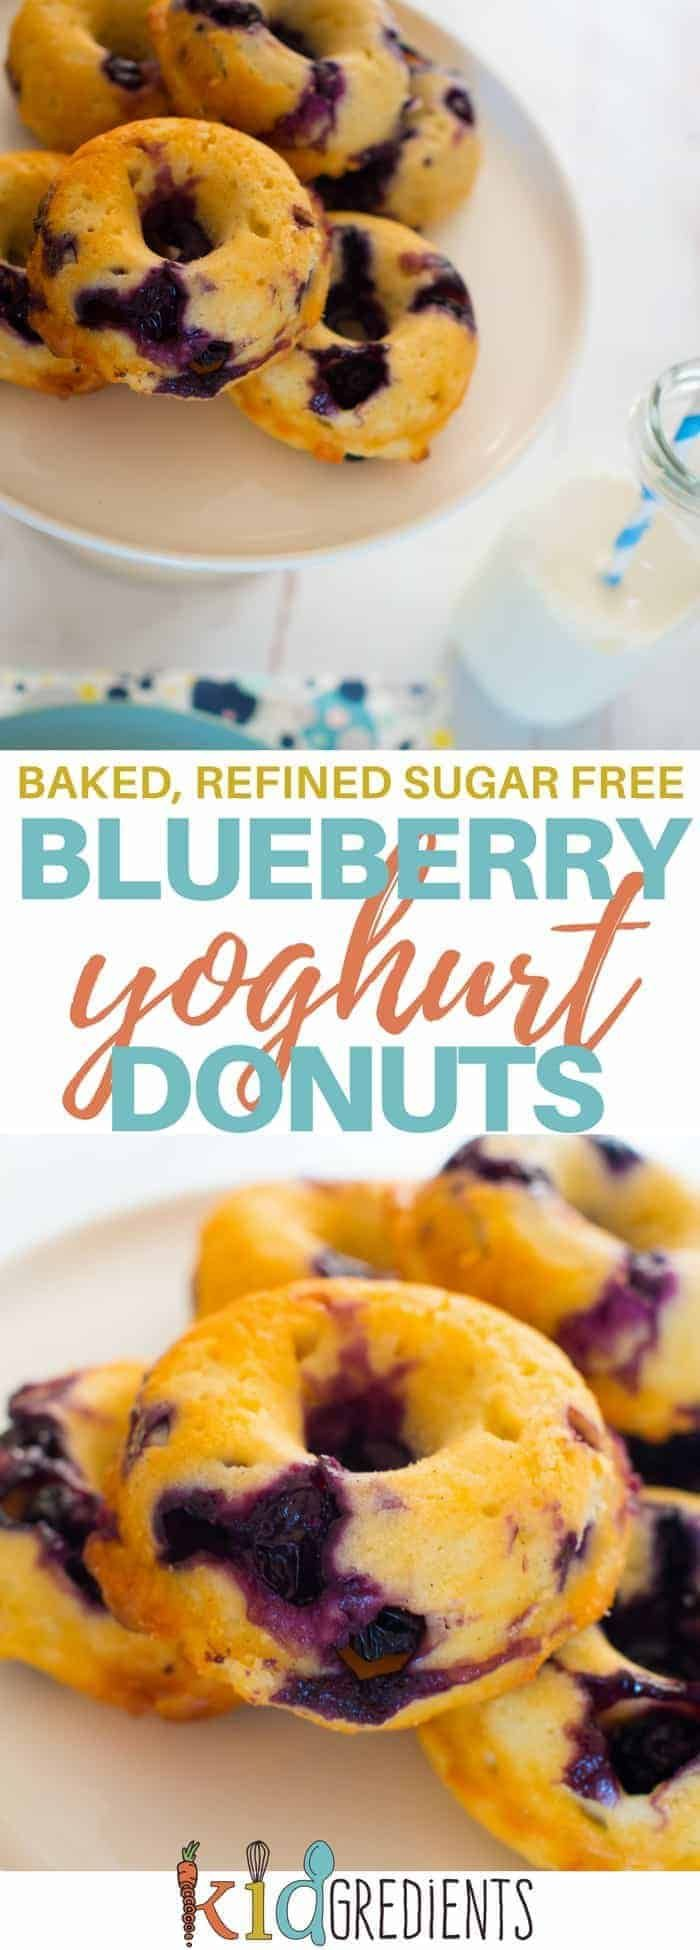 Baked blueberry yoghurt donuts- no added sugar #sugarfree